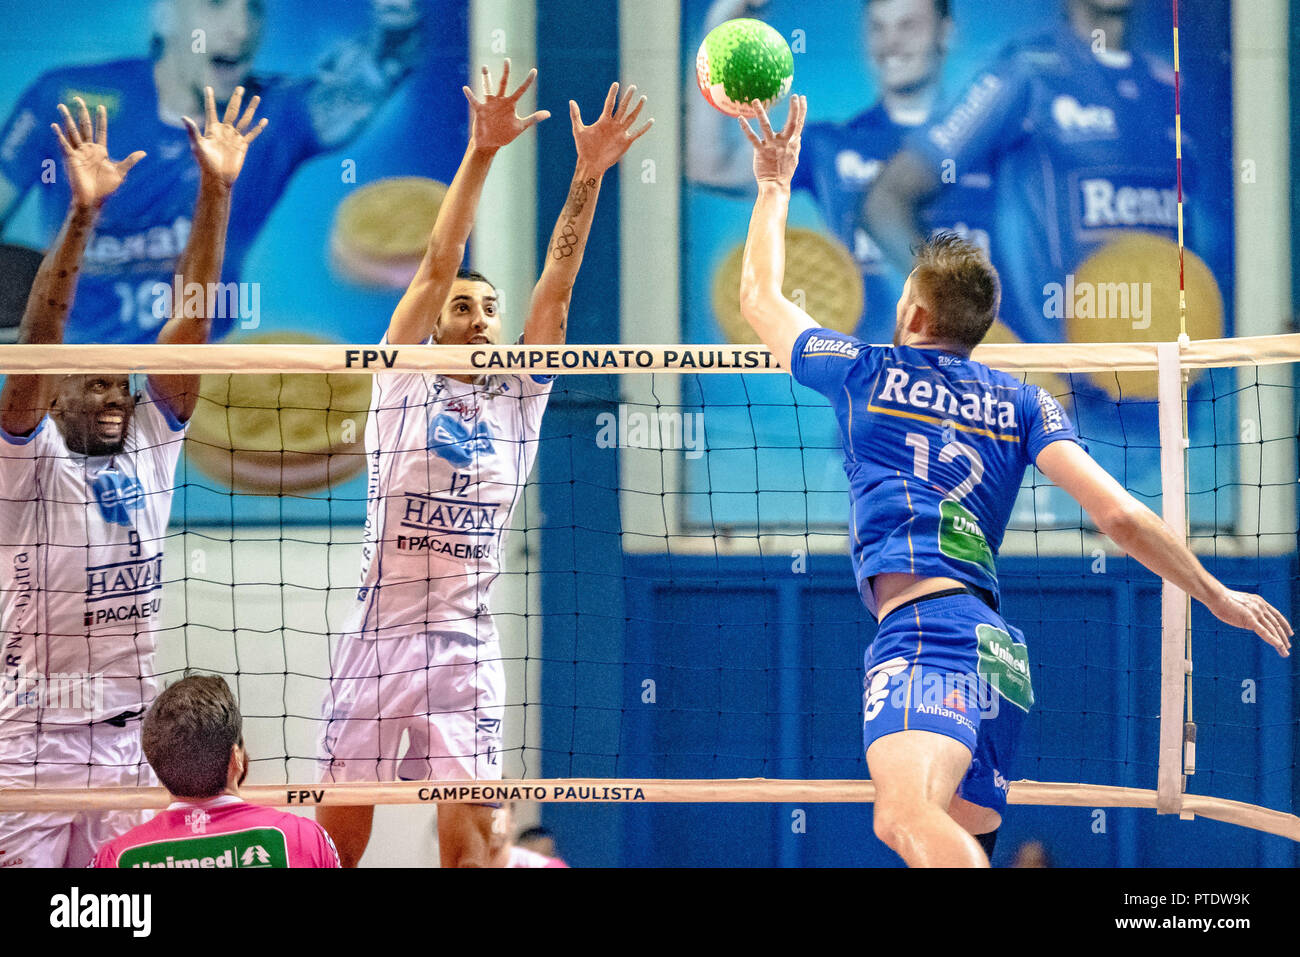 Campinas, Brazil. 08th Oct, 2018. finals of the Paulista Men'sleyballball Championship held in Campinas, at the Taquaral Gymna starting on Monday (8) and finishing in the the first minutes this Tuesday (9). Credit: Fabio Leoni/FotoArena/Alamy Live News - Stock Image